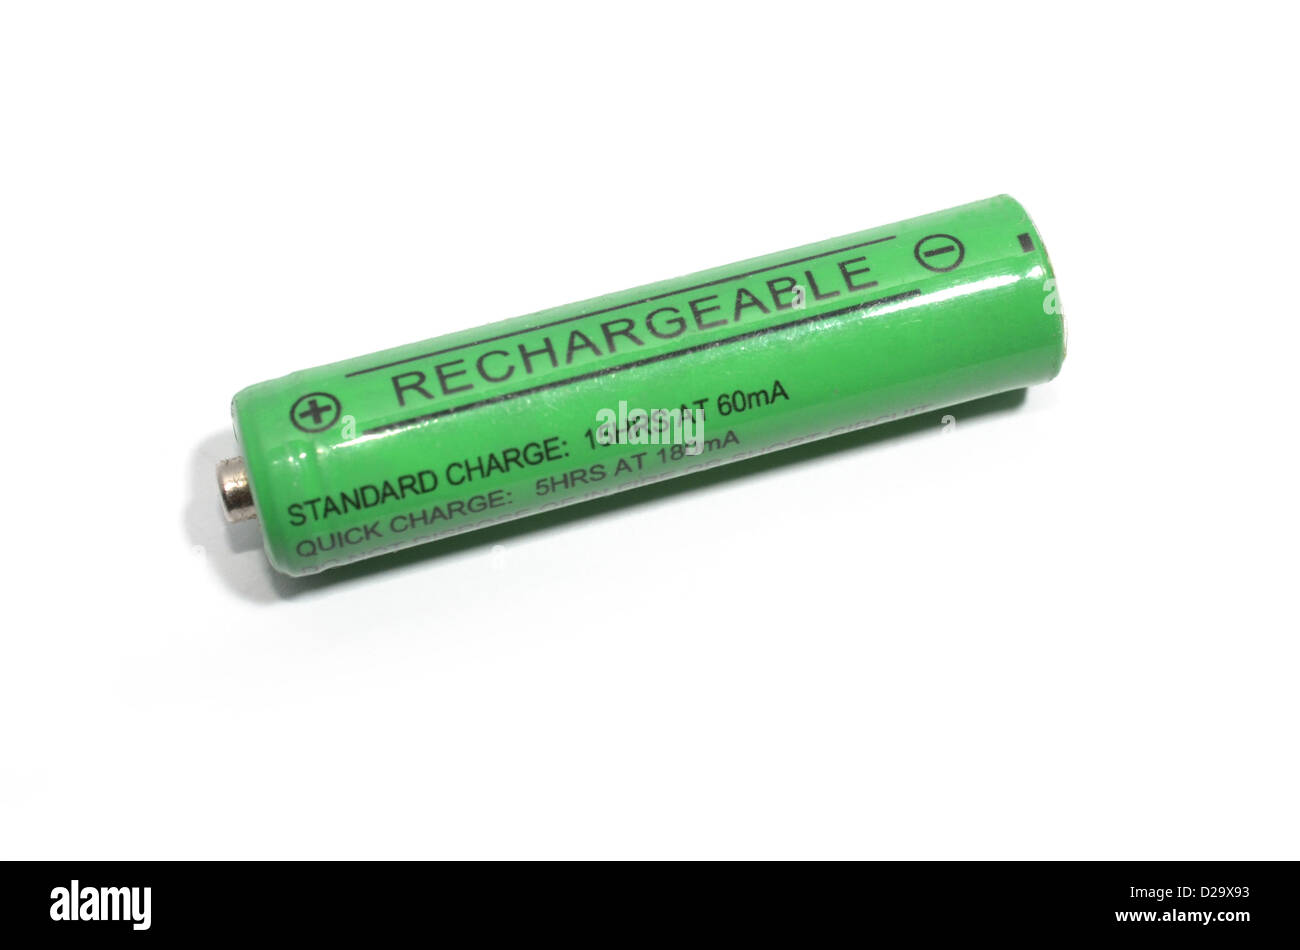 Green rechargeable AA battery - Stock Image